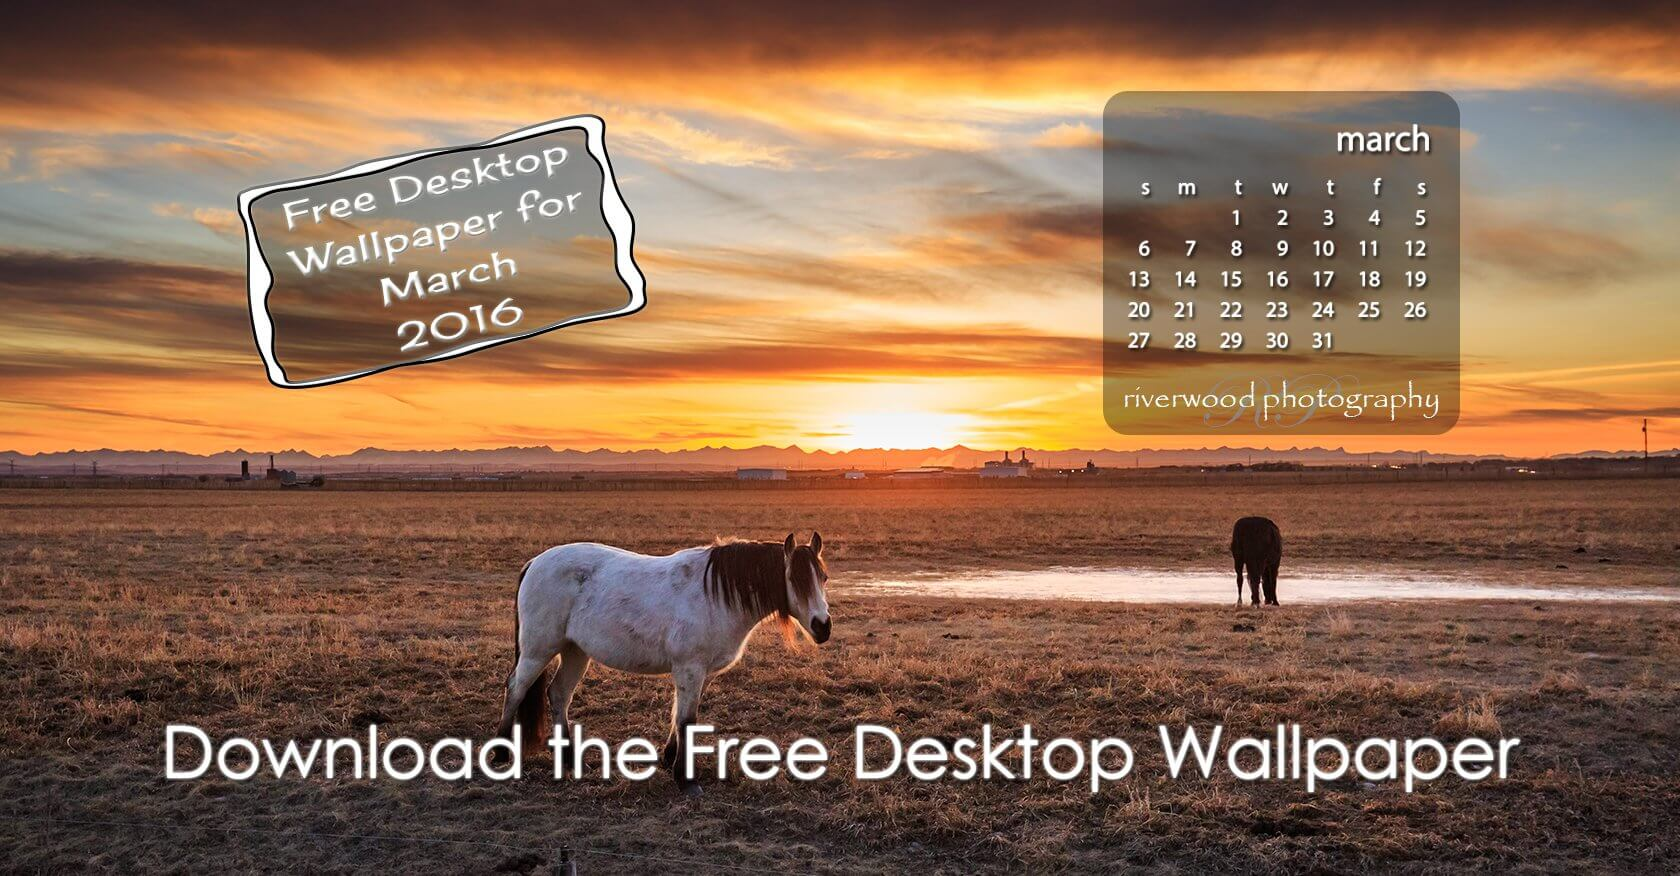 Free Desktop Wallpaper for March 2016